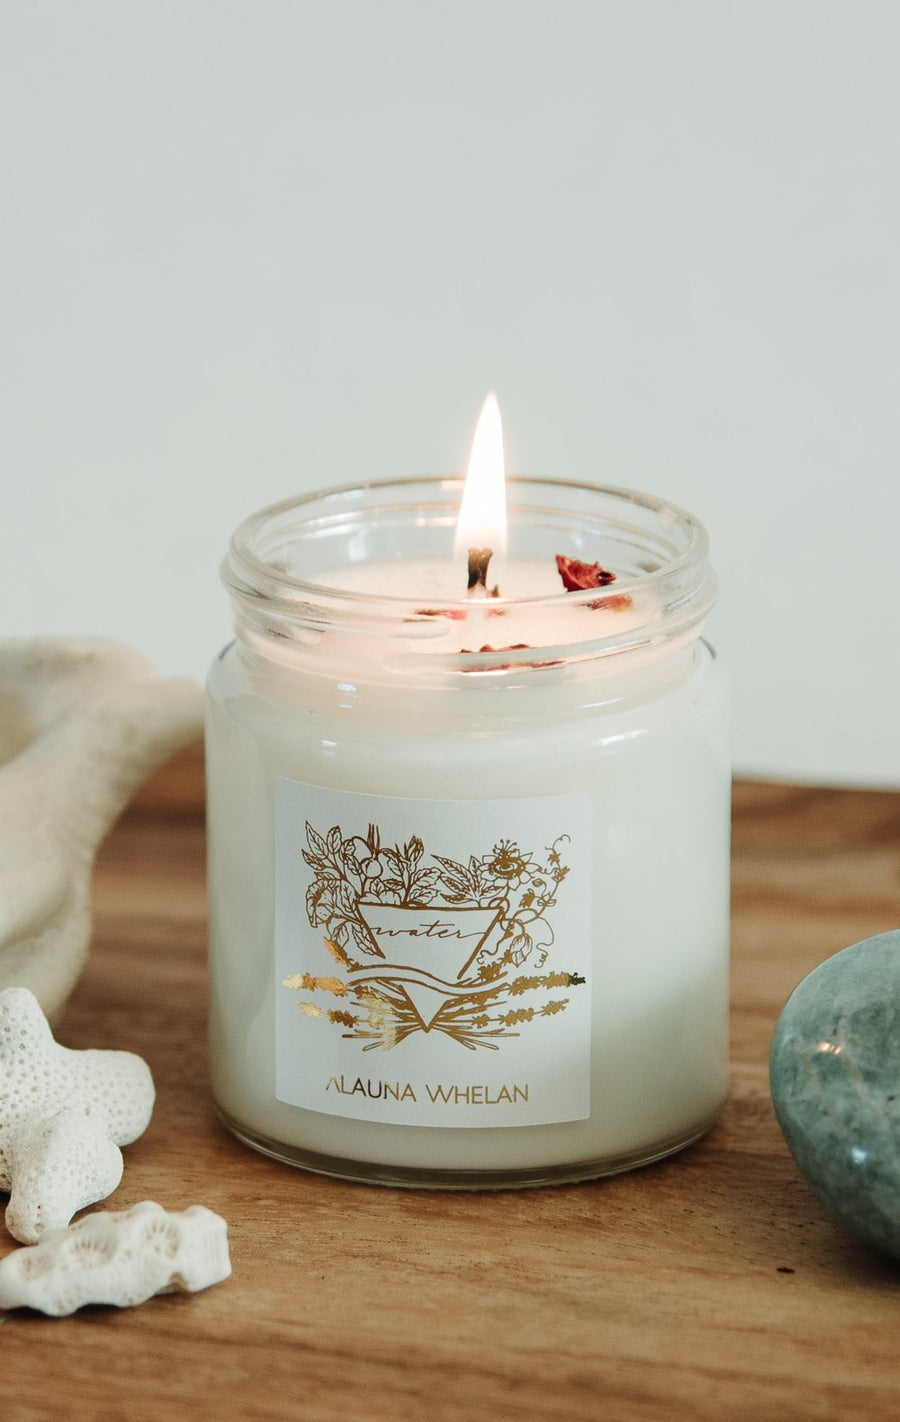 Alauna Whelan - Femininity Water Intention Candle